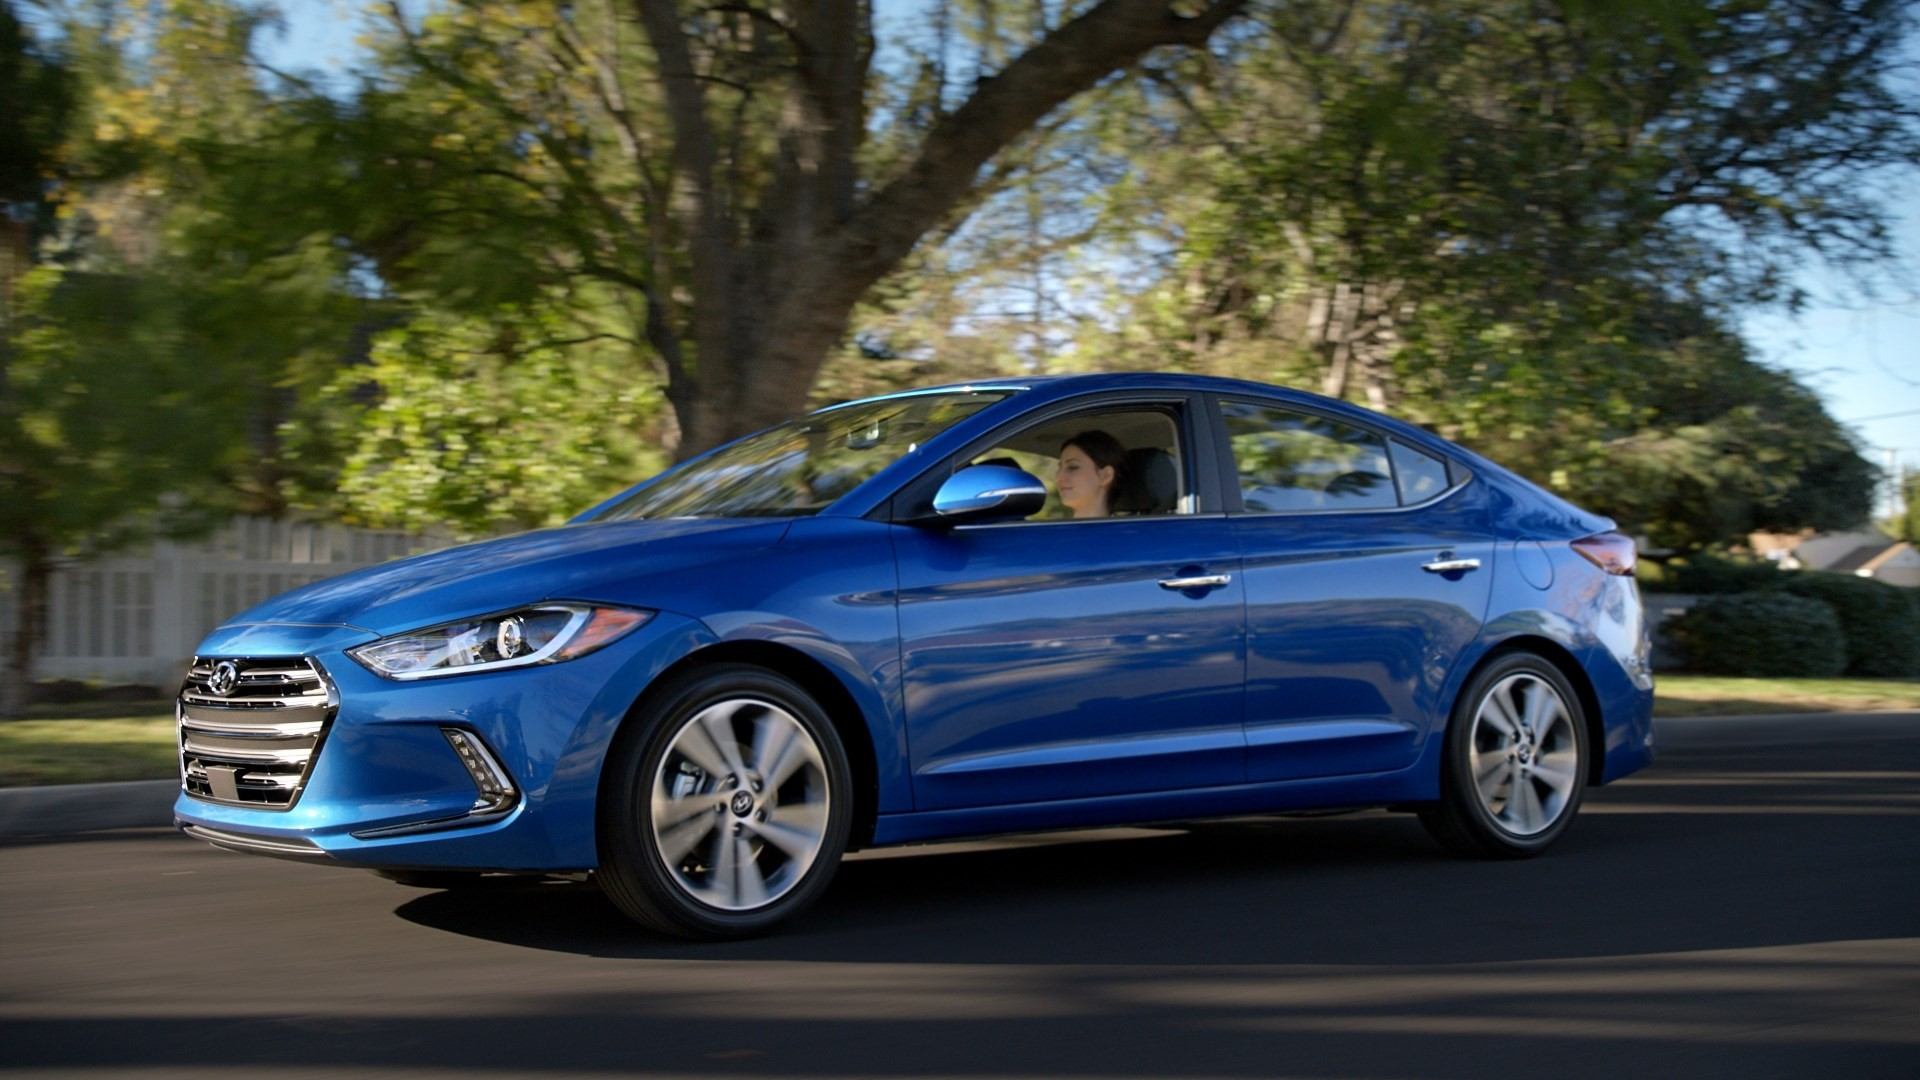 Hyundai Elantra Coupe >> 2016 Hyundai Super Bowl Ads Feature Ryan Reynolds, Talking Bears and the Elantra - autoevolution